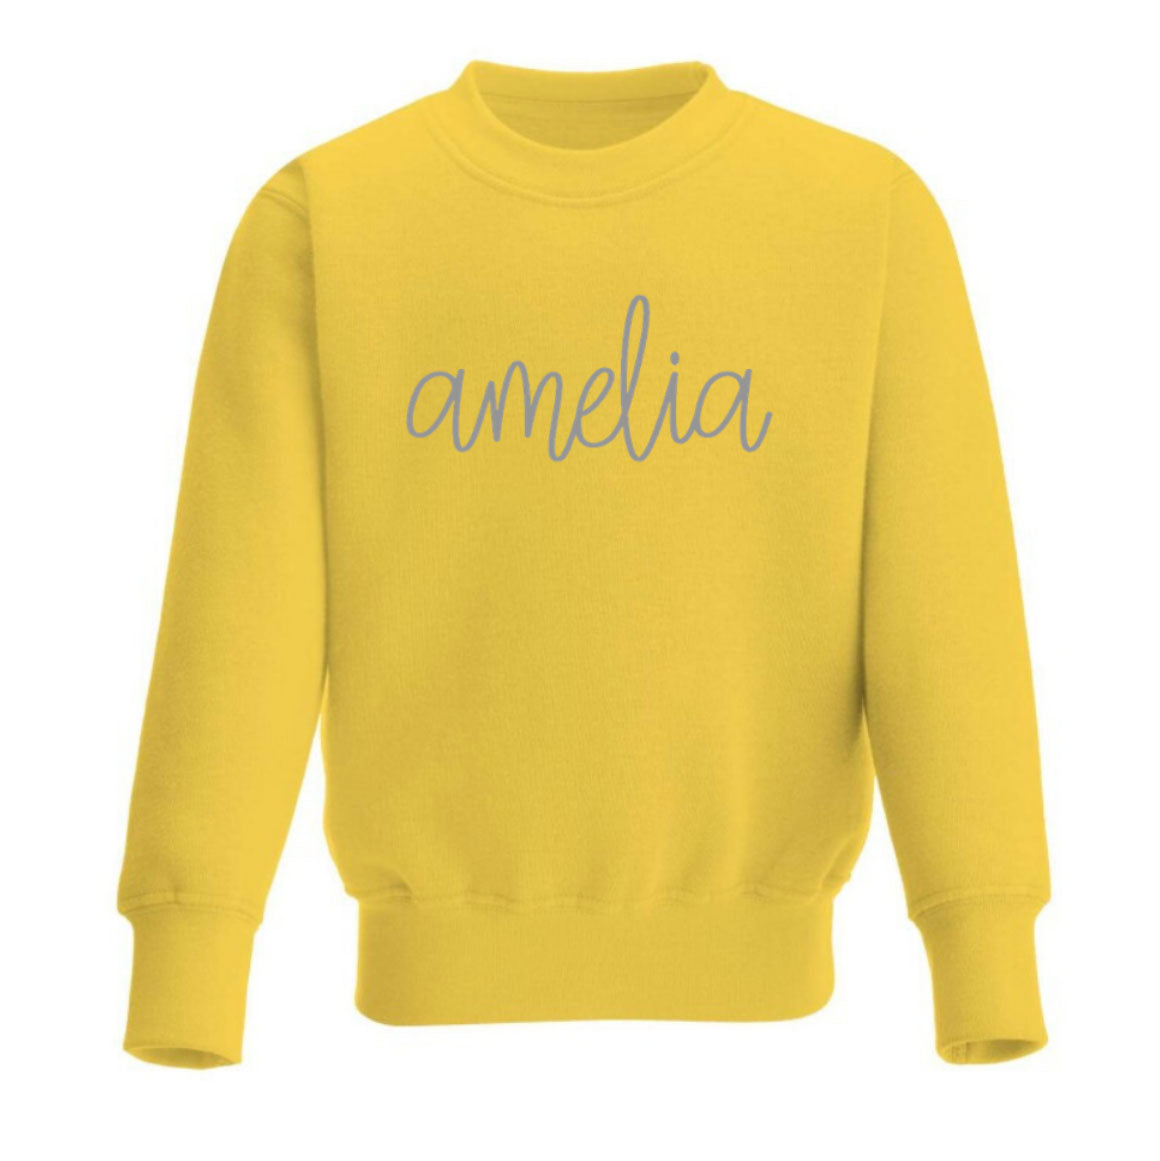 Create Your Own Yellow Sweater